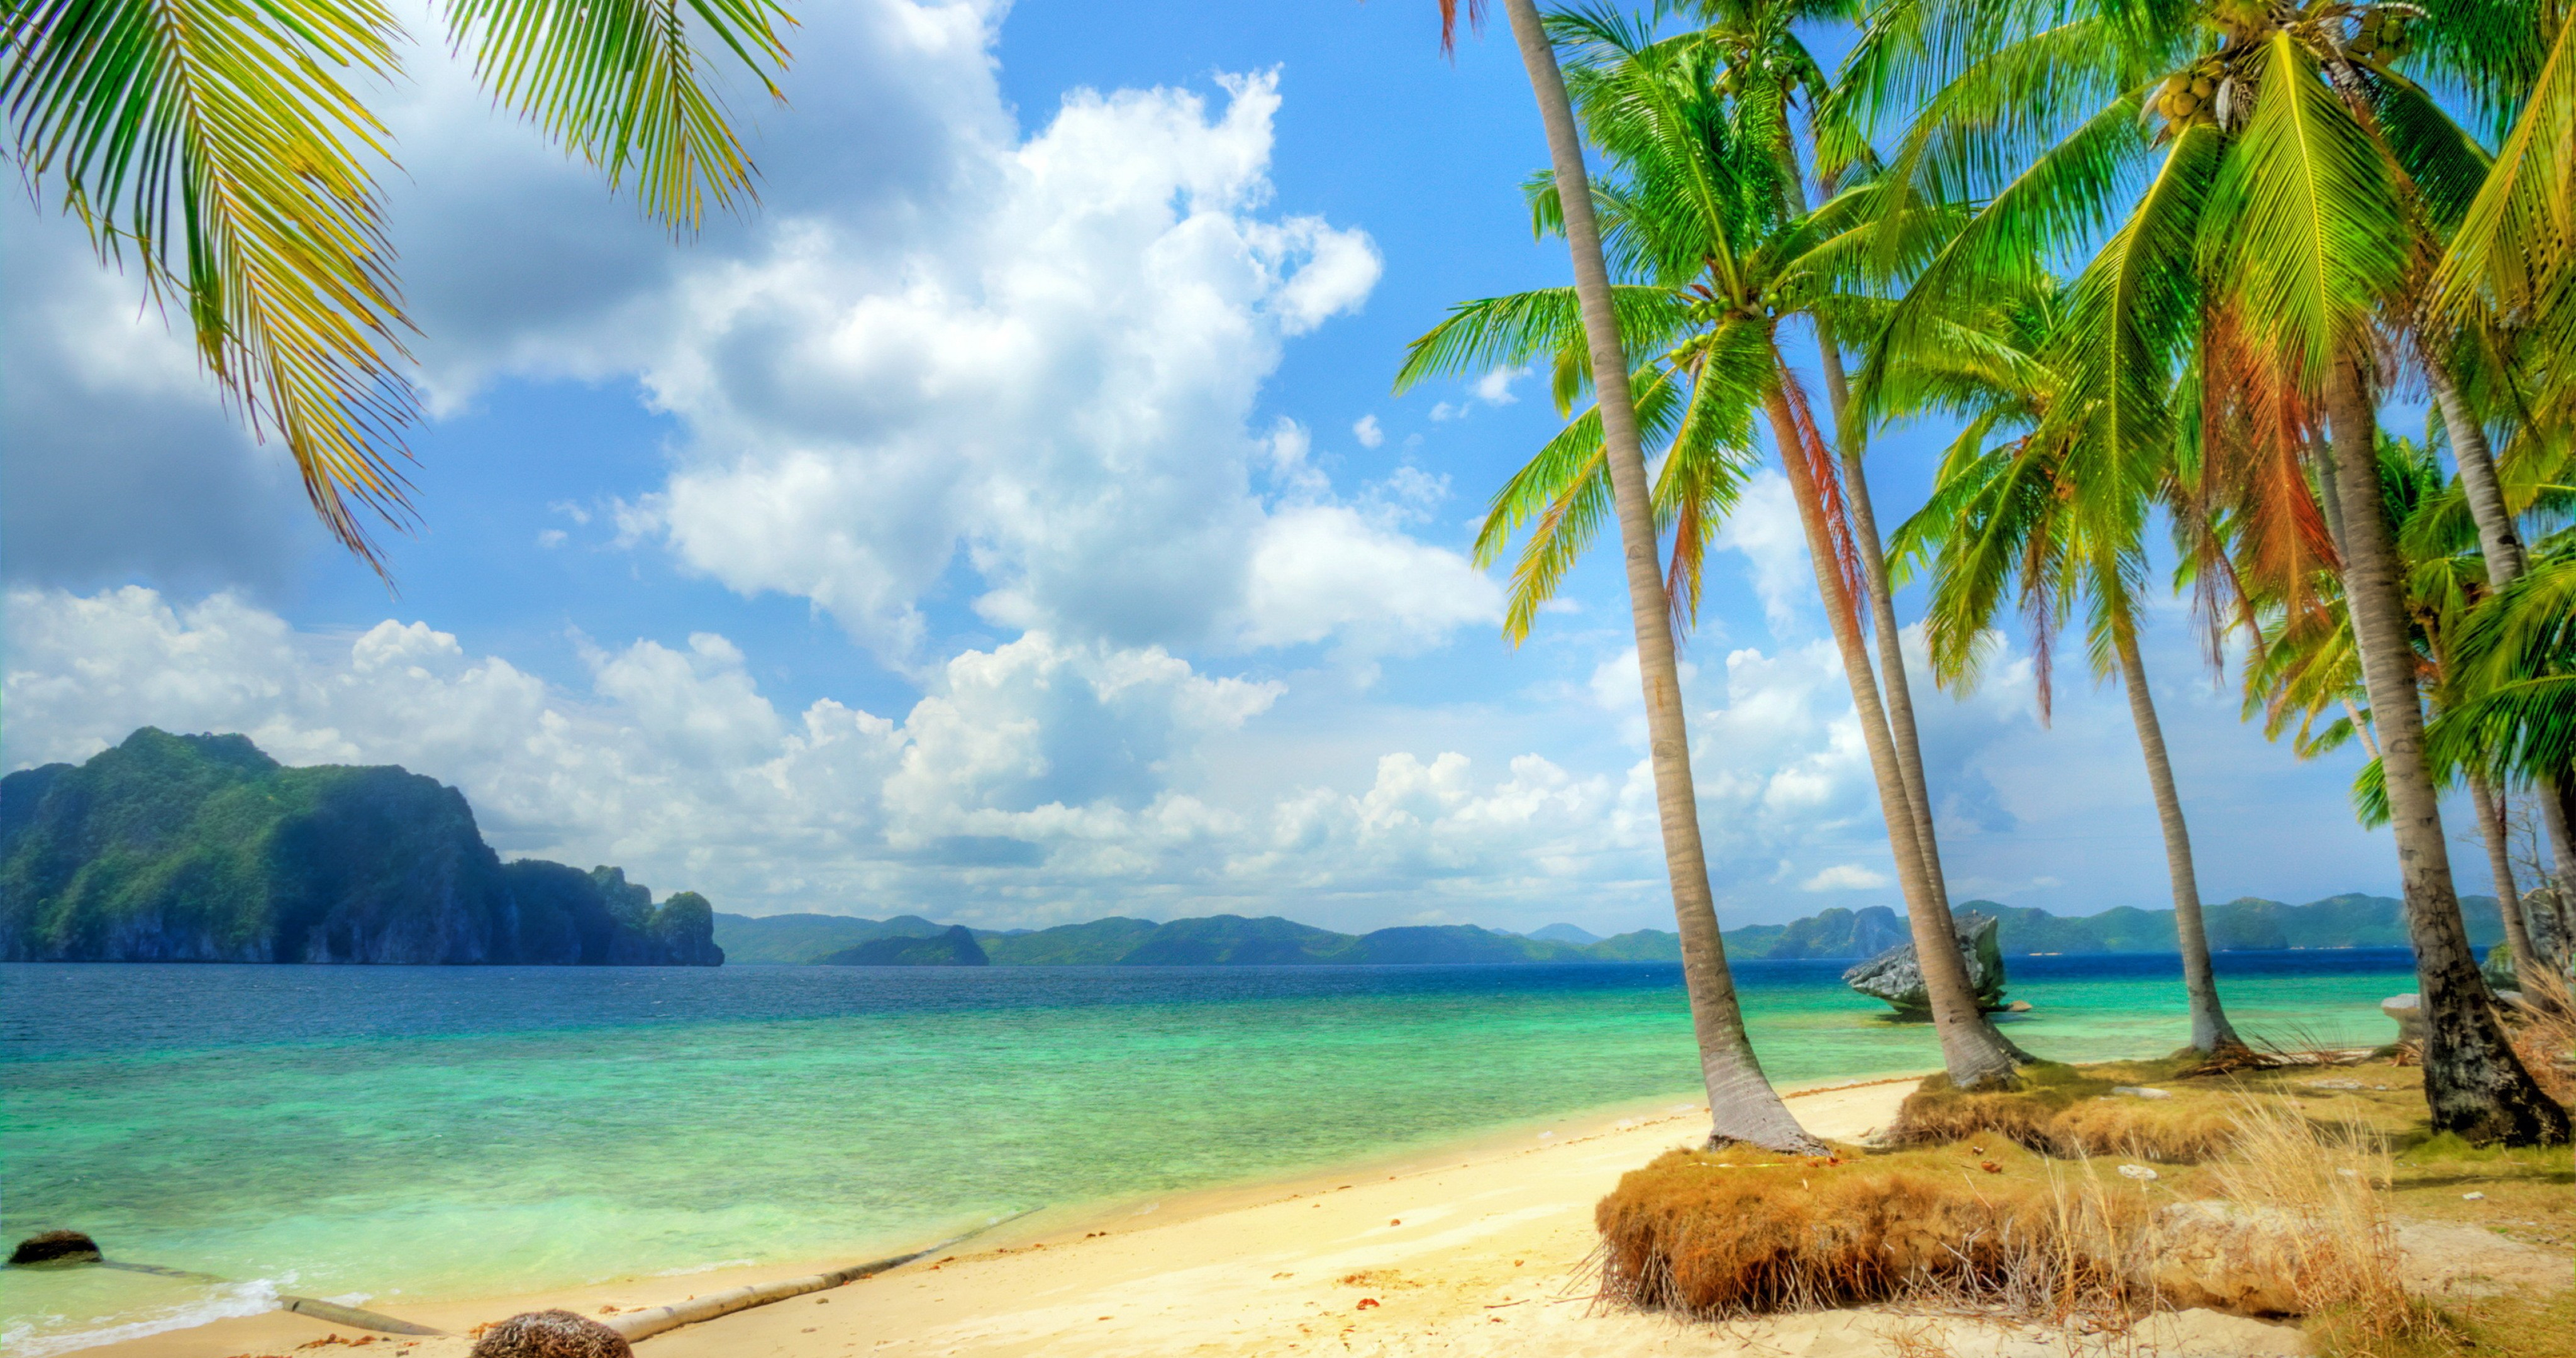 Download Beach Wallpaper Ipad Gallery: 4K Beach Wallpapers High Quality